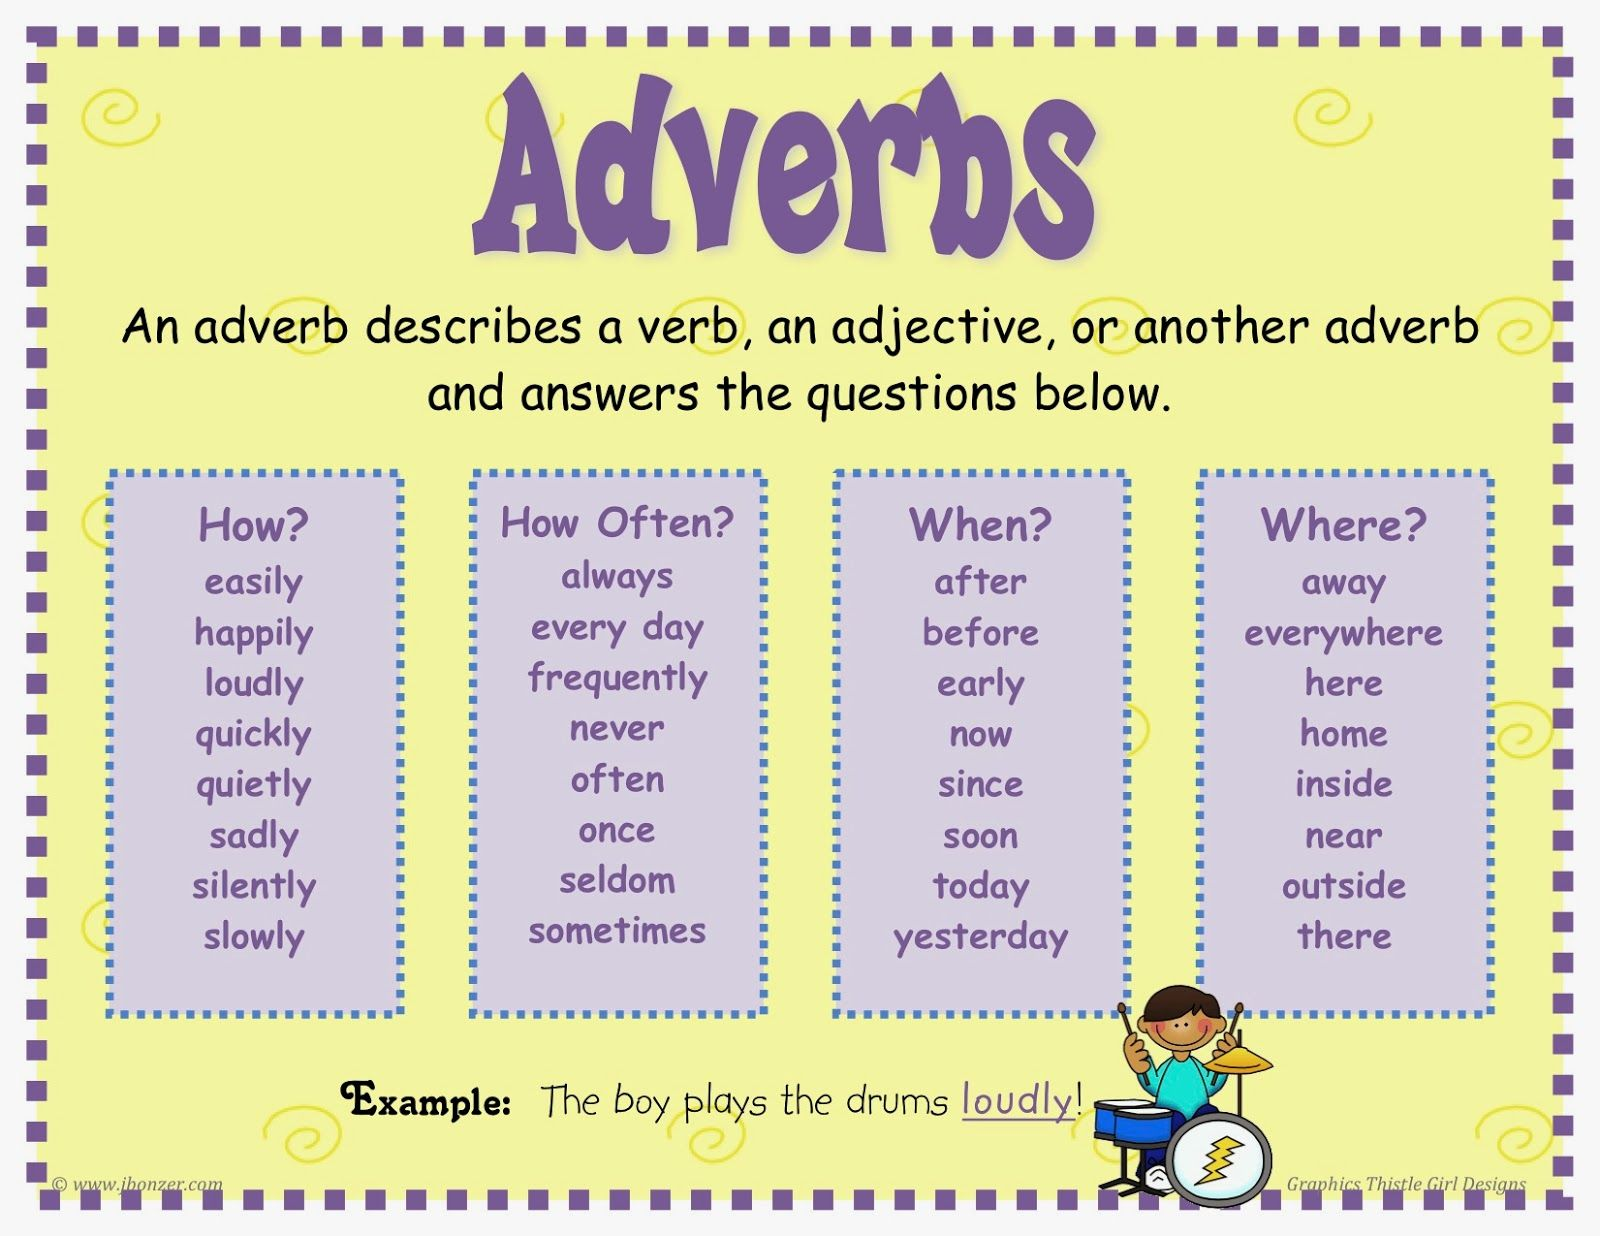 Adverbs Of Manner Exercises With Answers